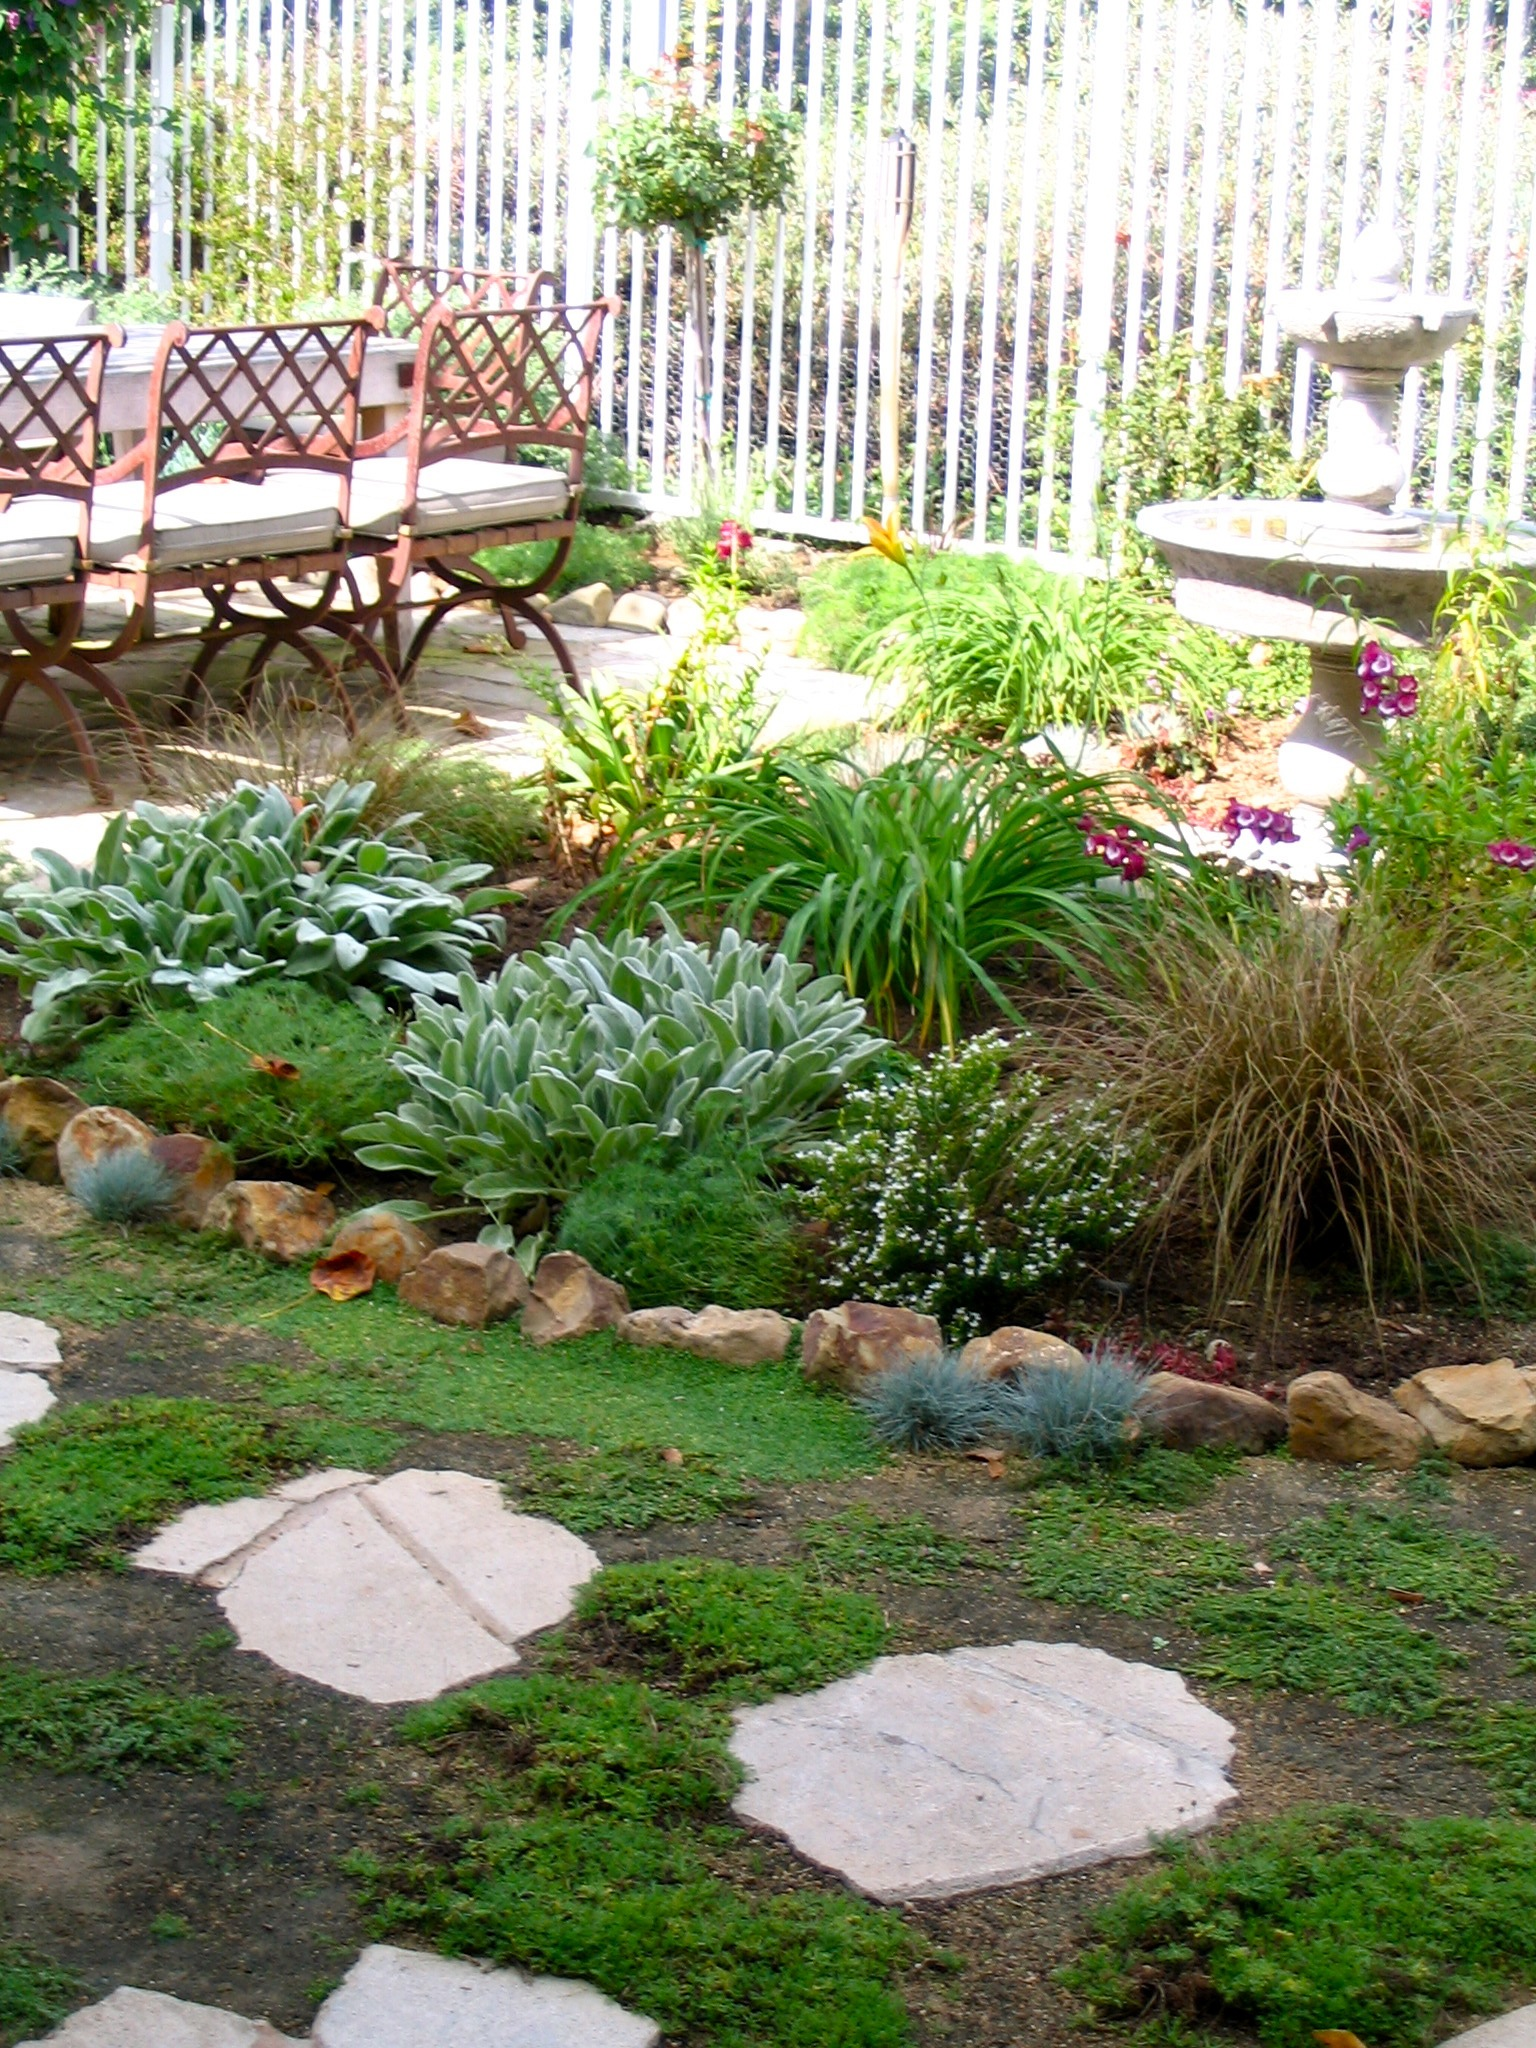 28 Tips For A Small Garden: Fountain Garden With Low Water Plants